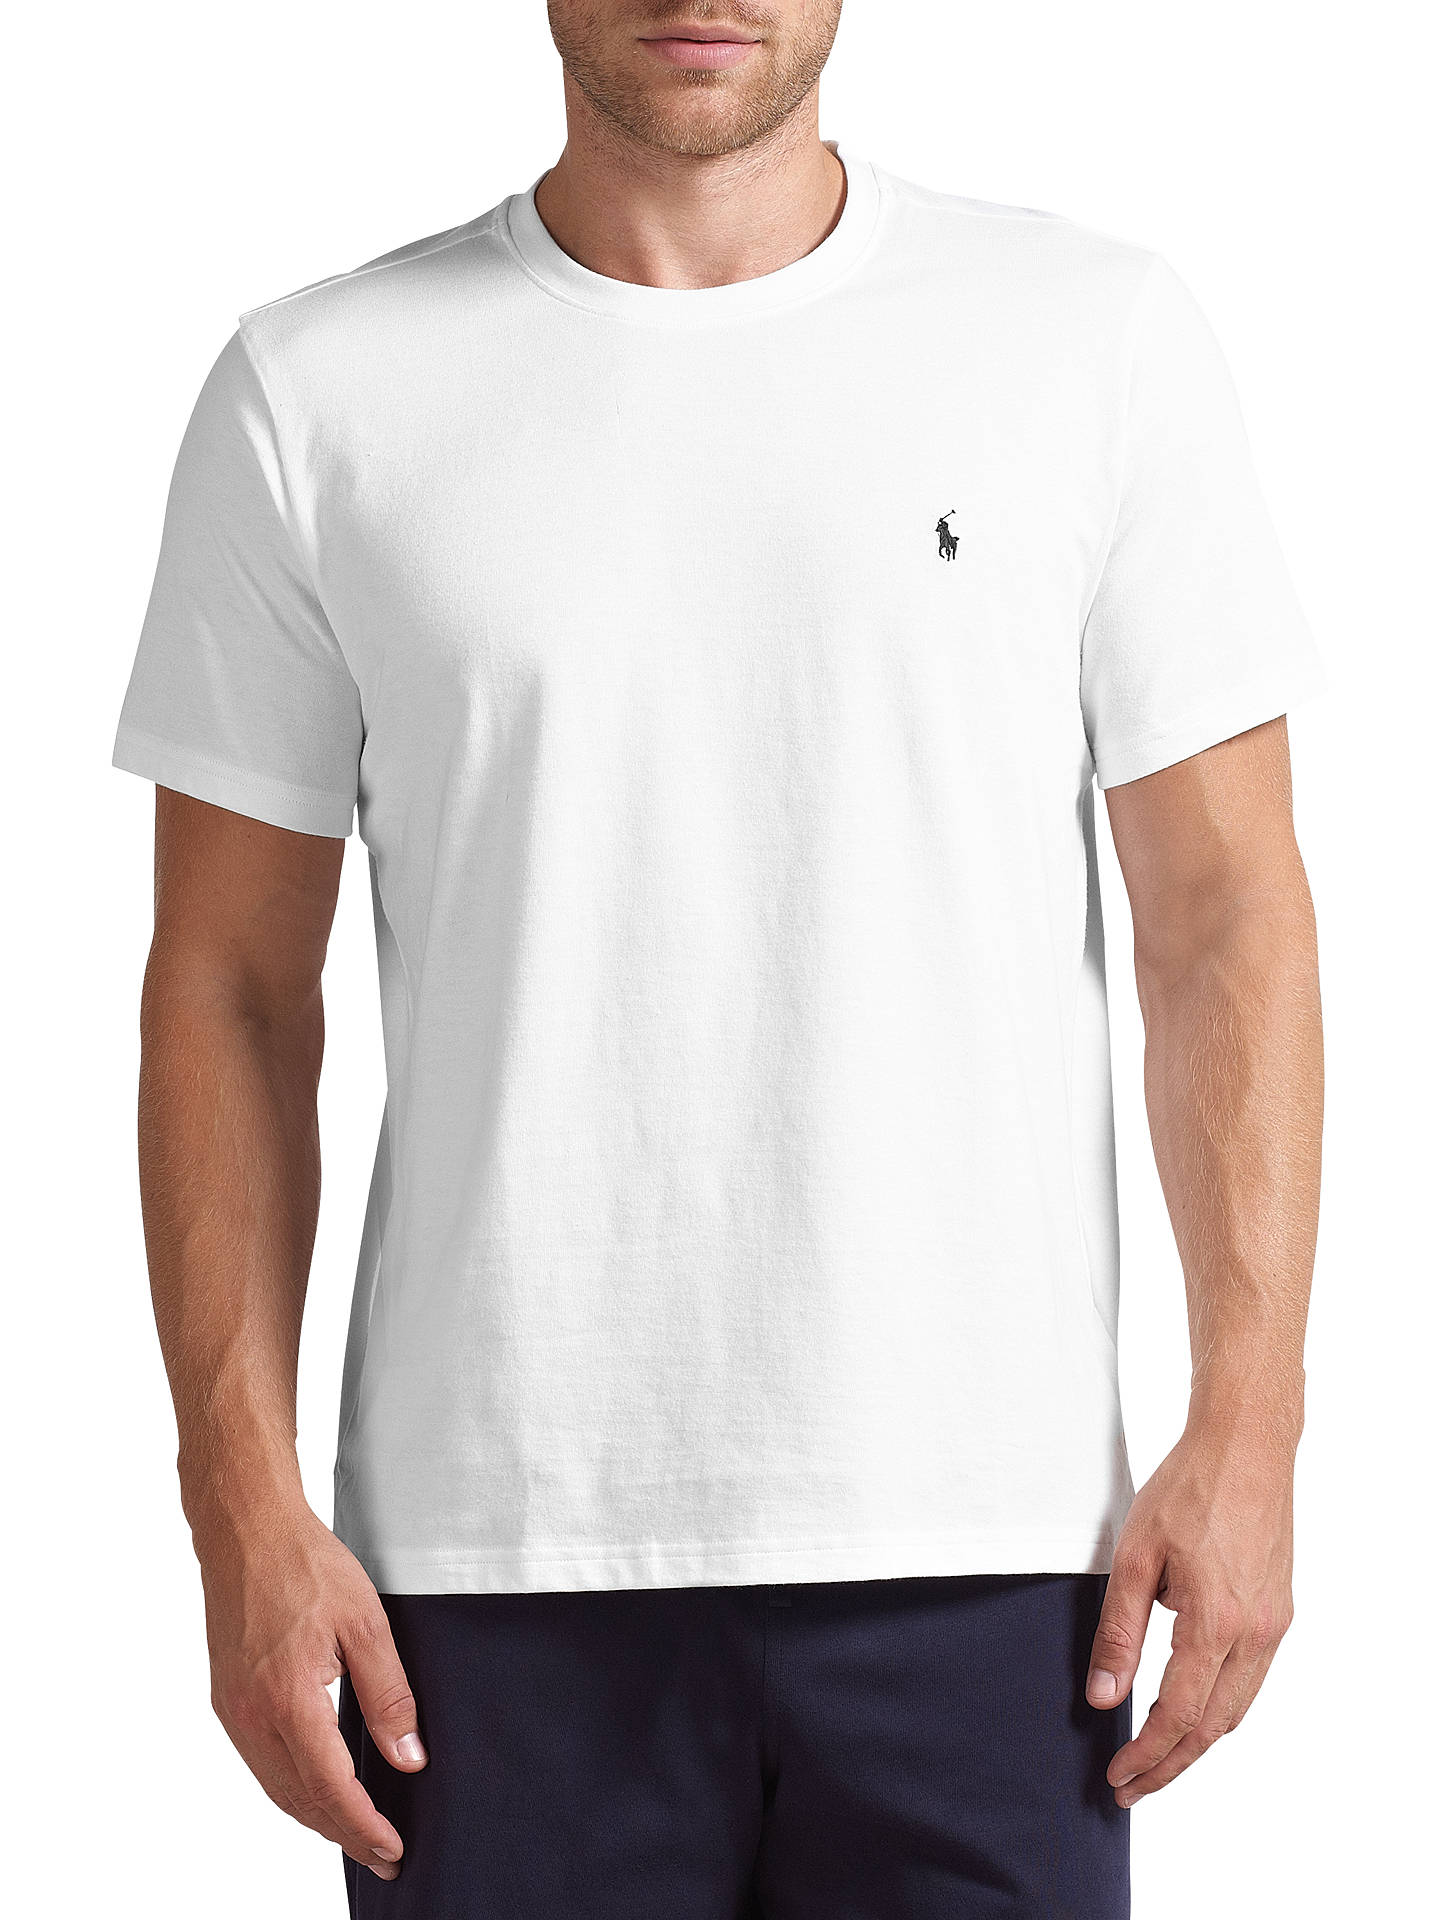 81b46ada Buy Polo Ralph Lauren Crew Neck Lounge T-Shirt, White, M Online at ...